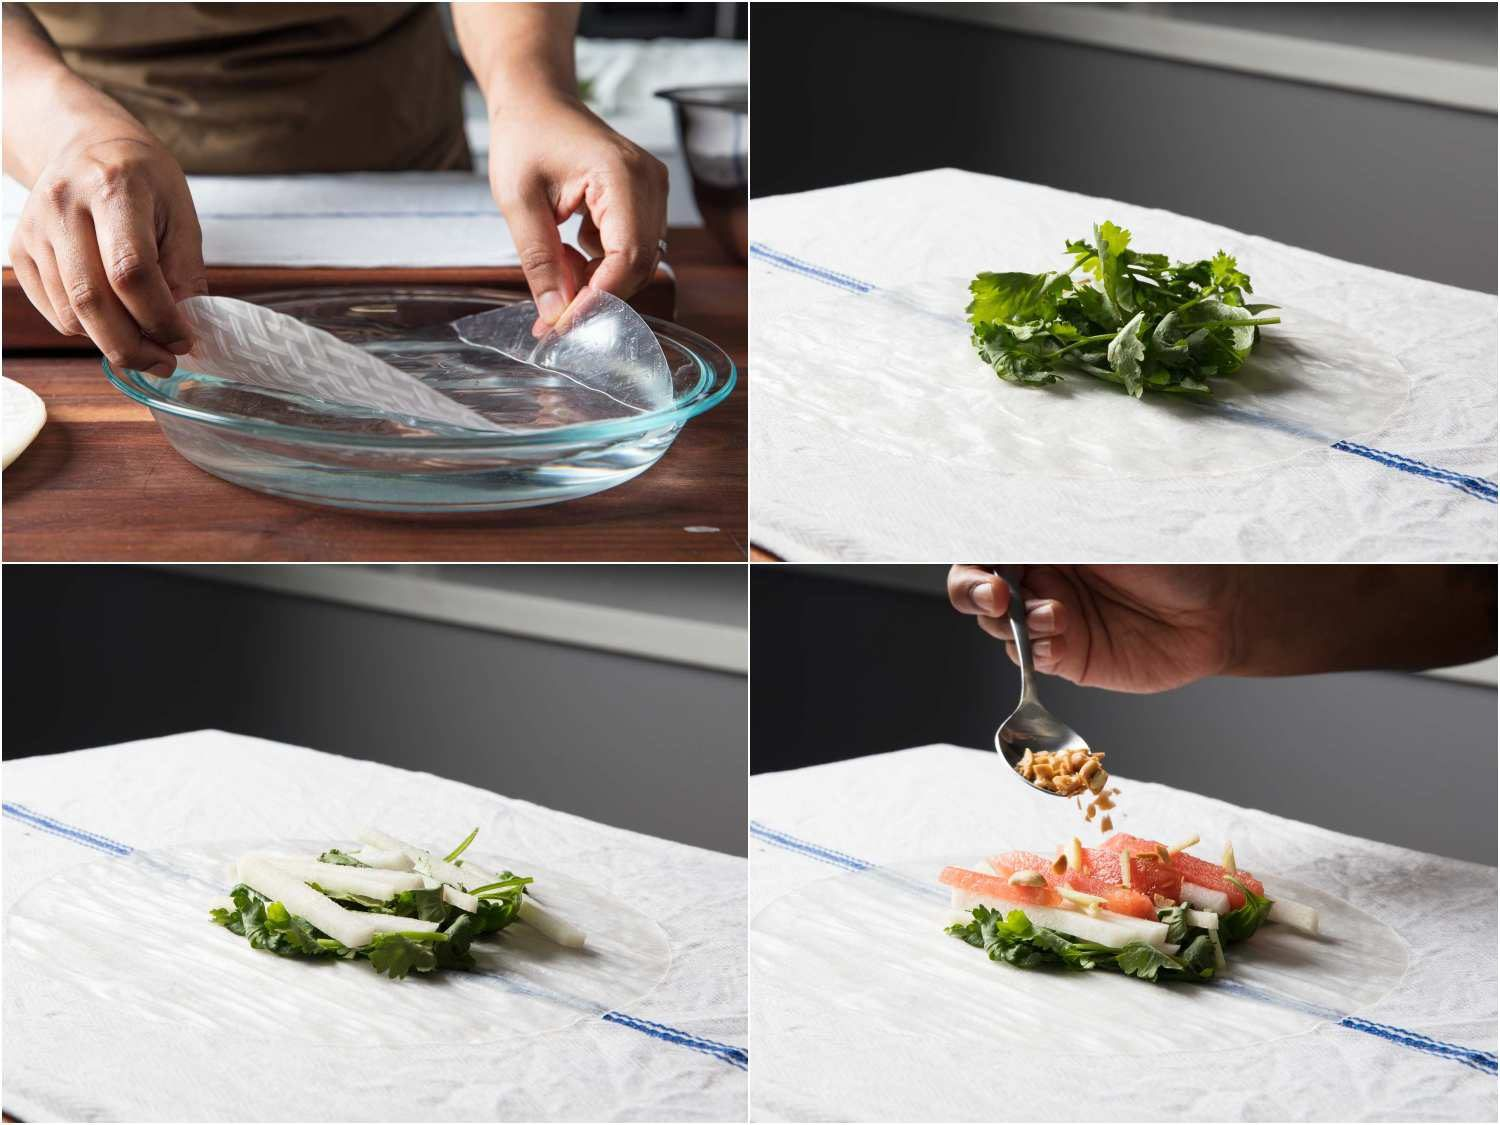 Adding watermelon, jicama, herbs, and peanuts to rice paper wrap for a summer roll